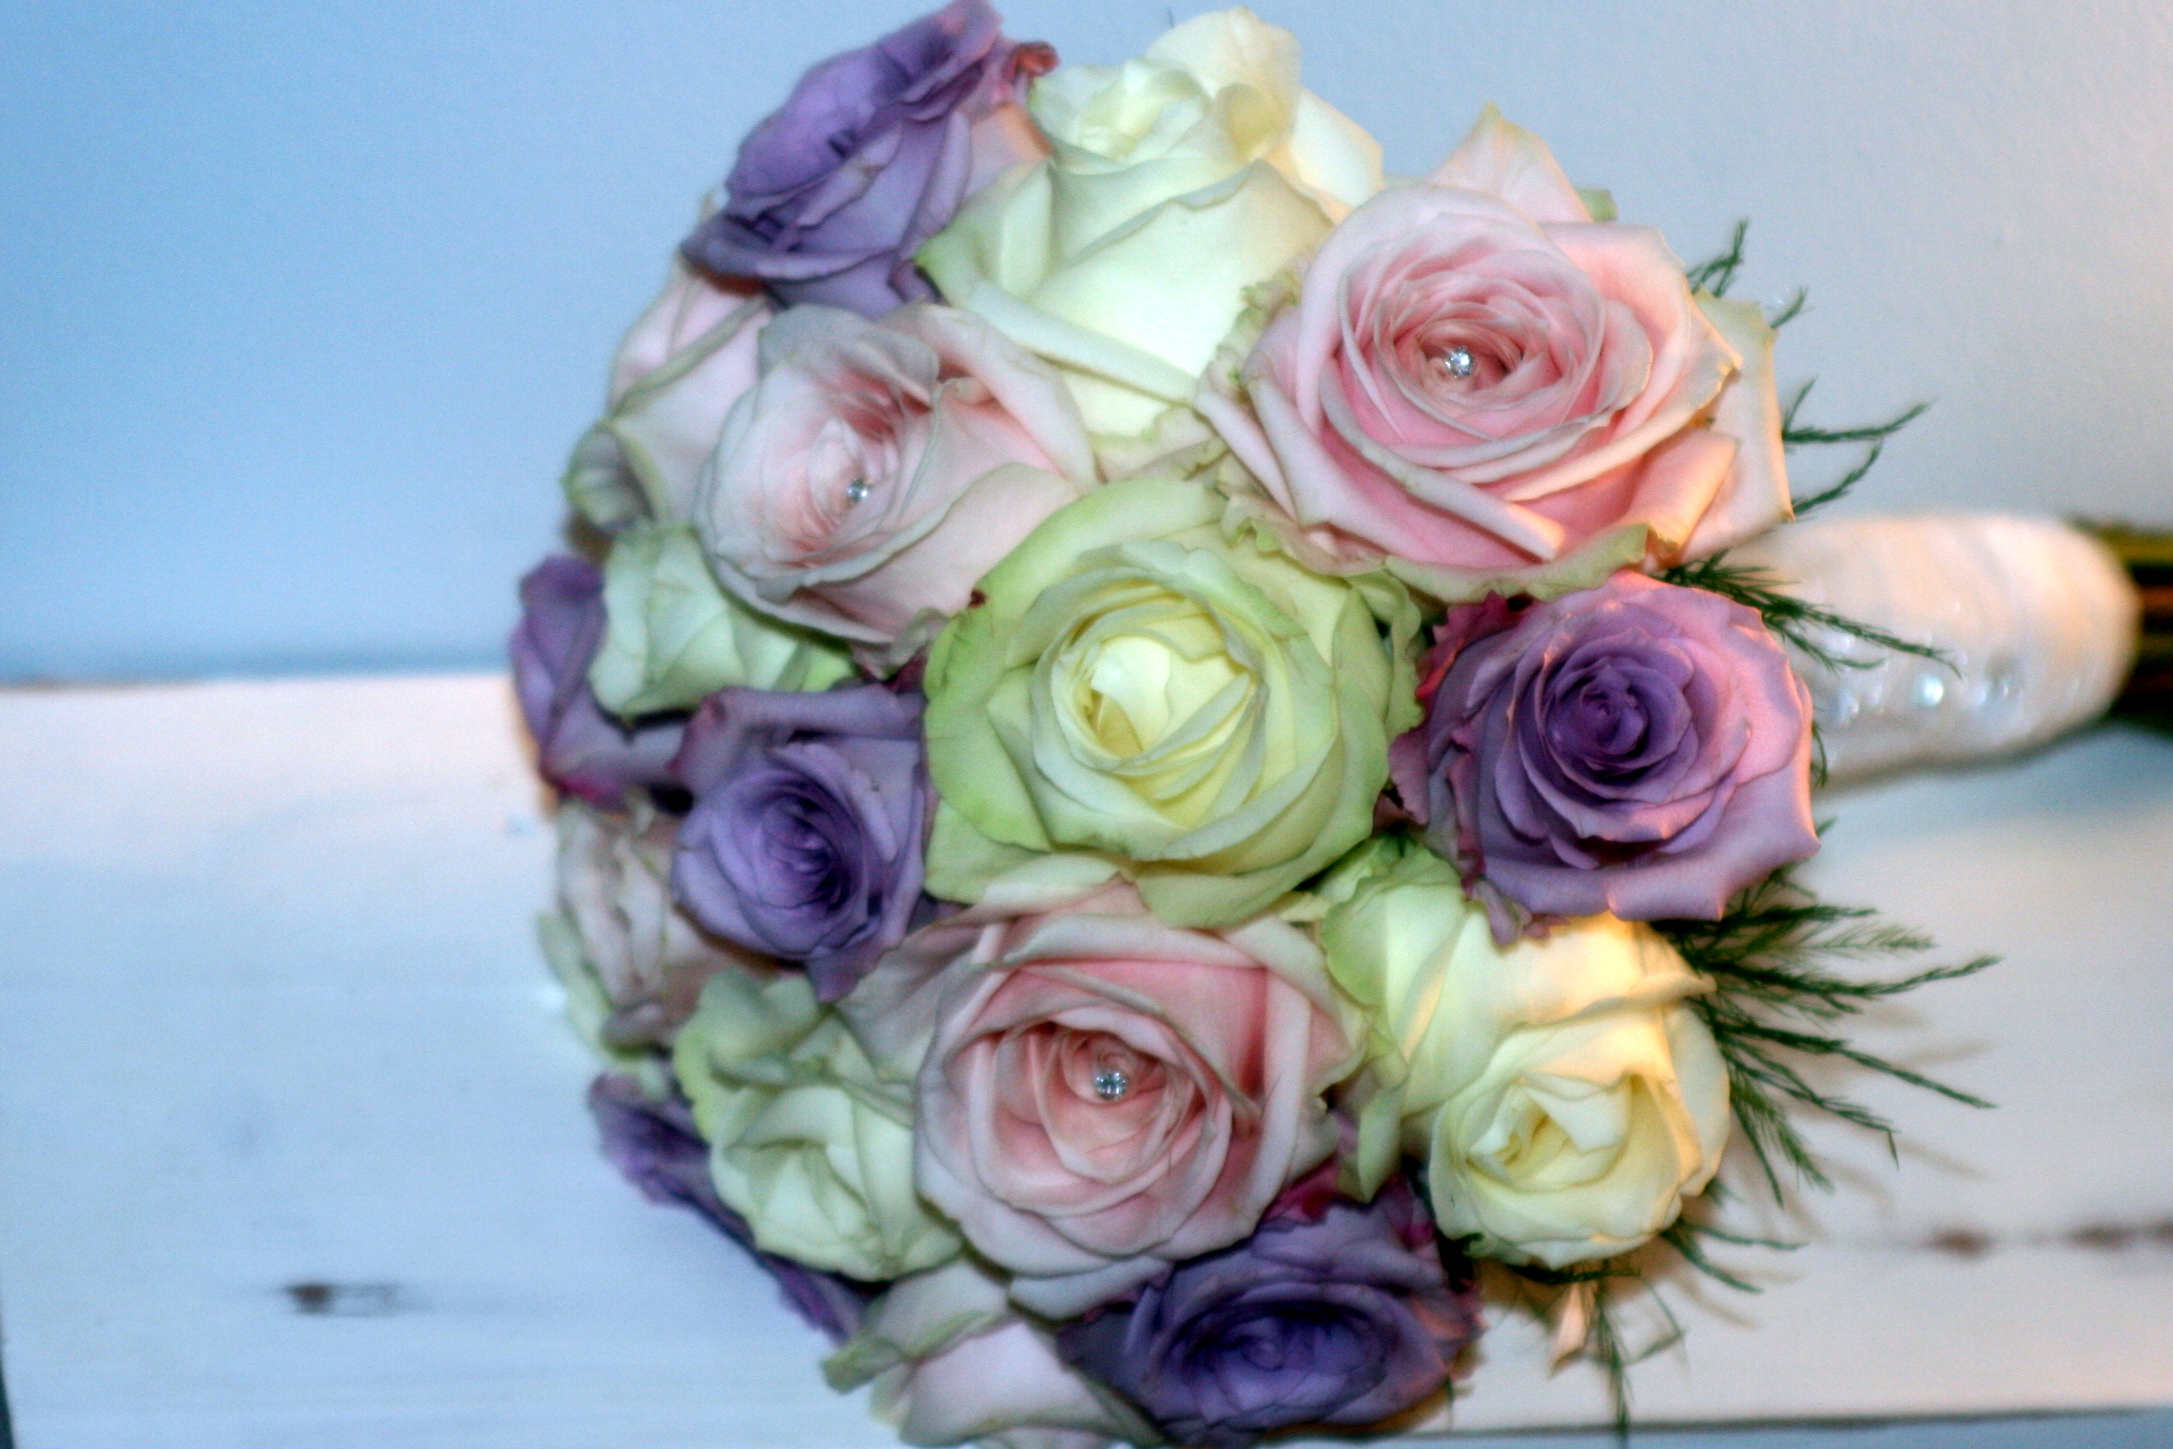 White roses and lavender roses